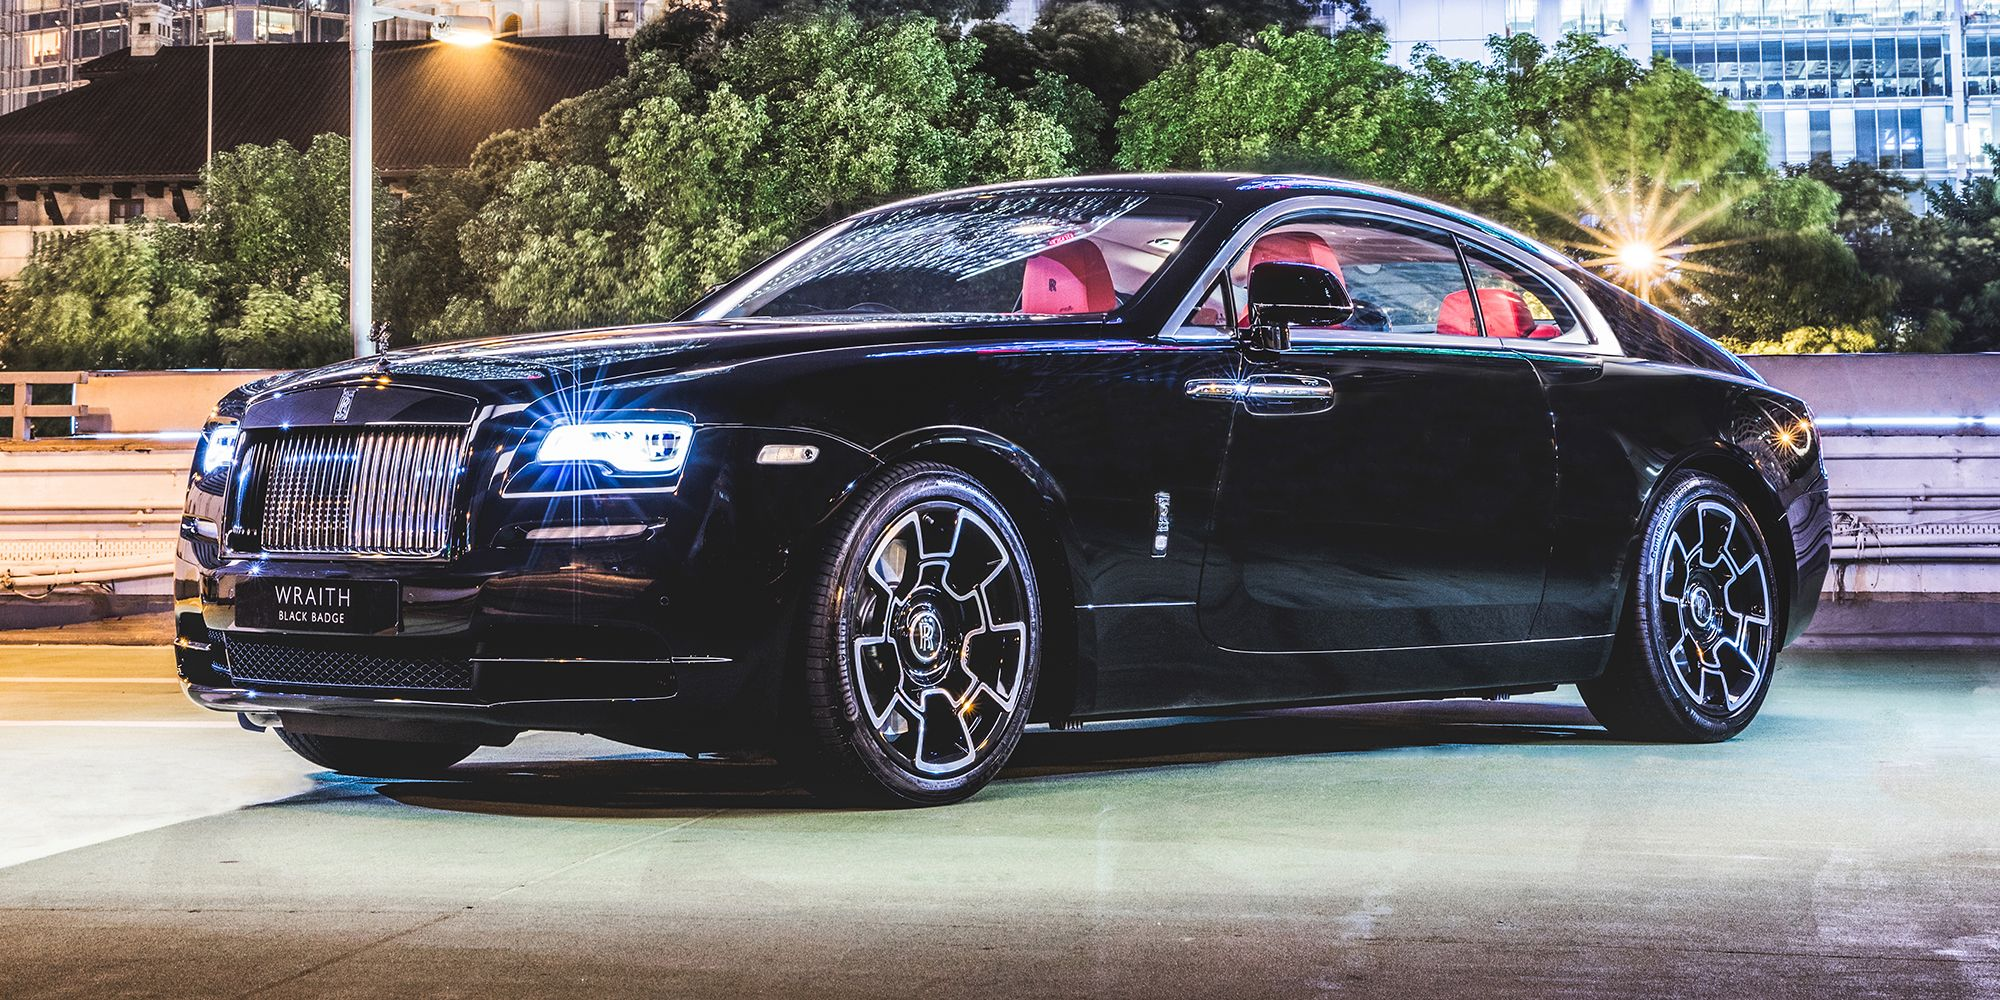 The Rolls Royce Wraith Black Badge Costs Many First Class Plane